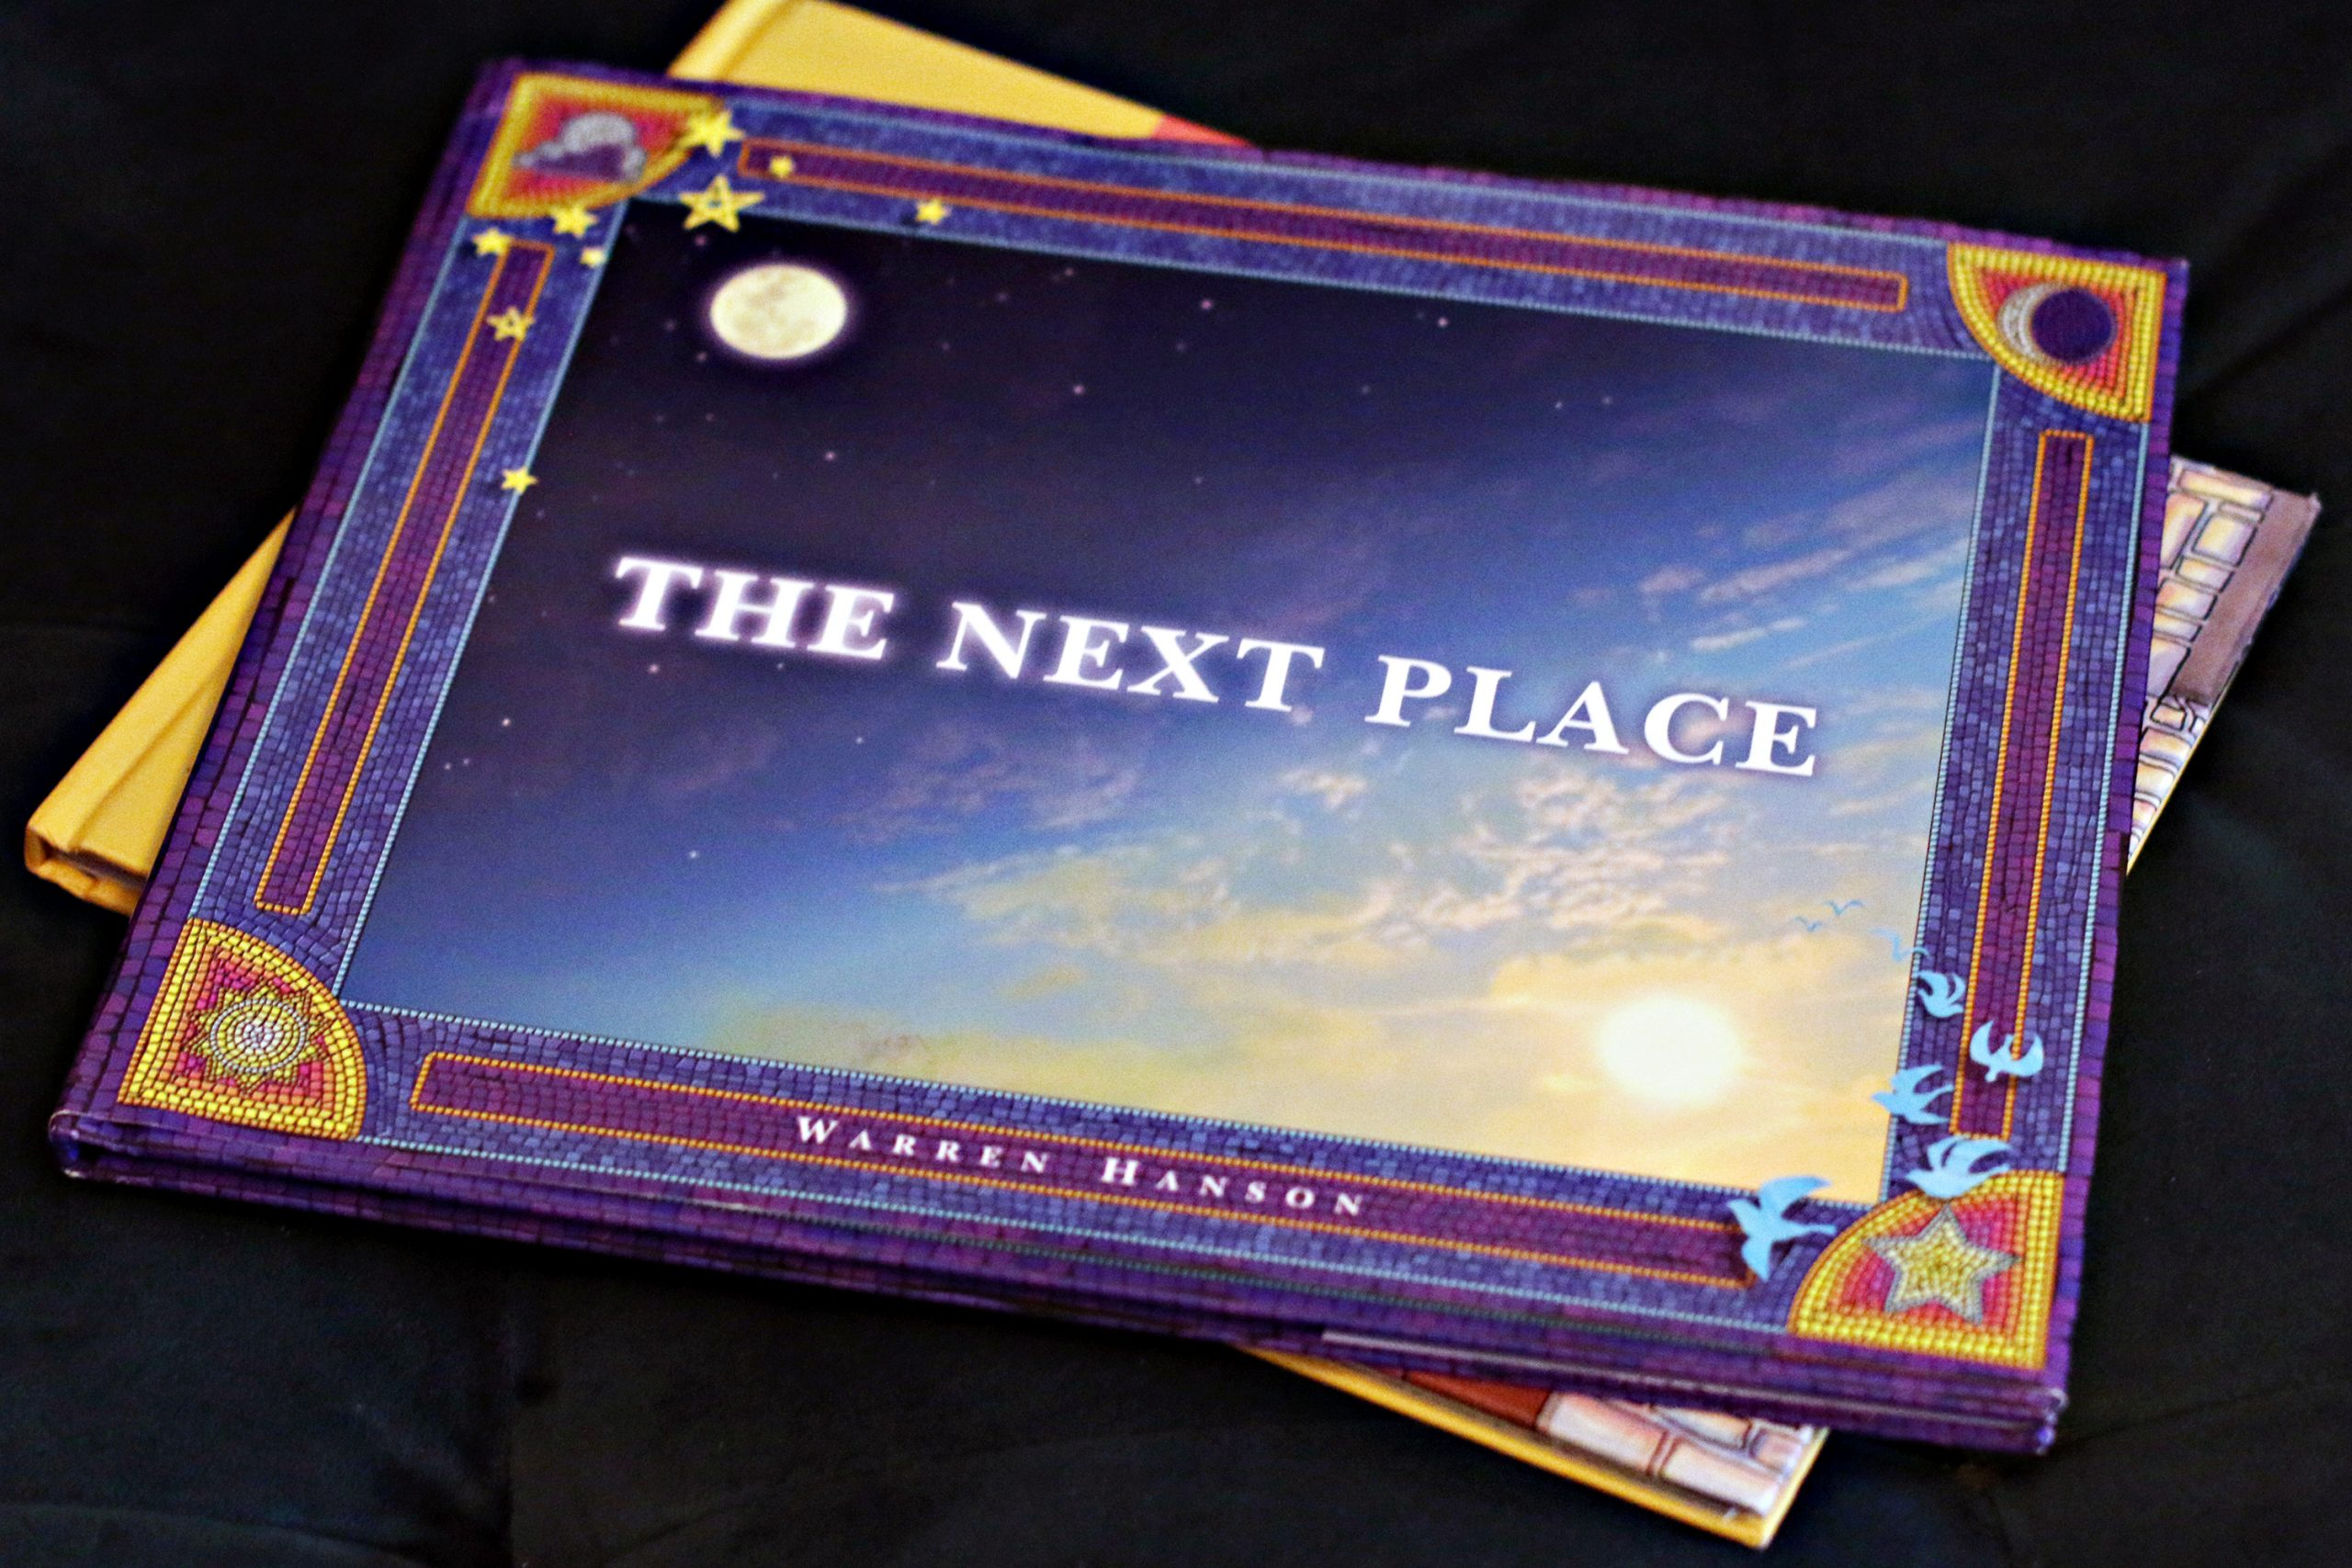 "A hardcover children's book called ""The Next Place"", by Warren Hanson, sitting on another book."